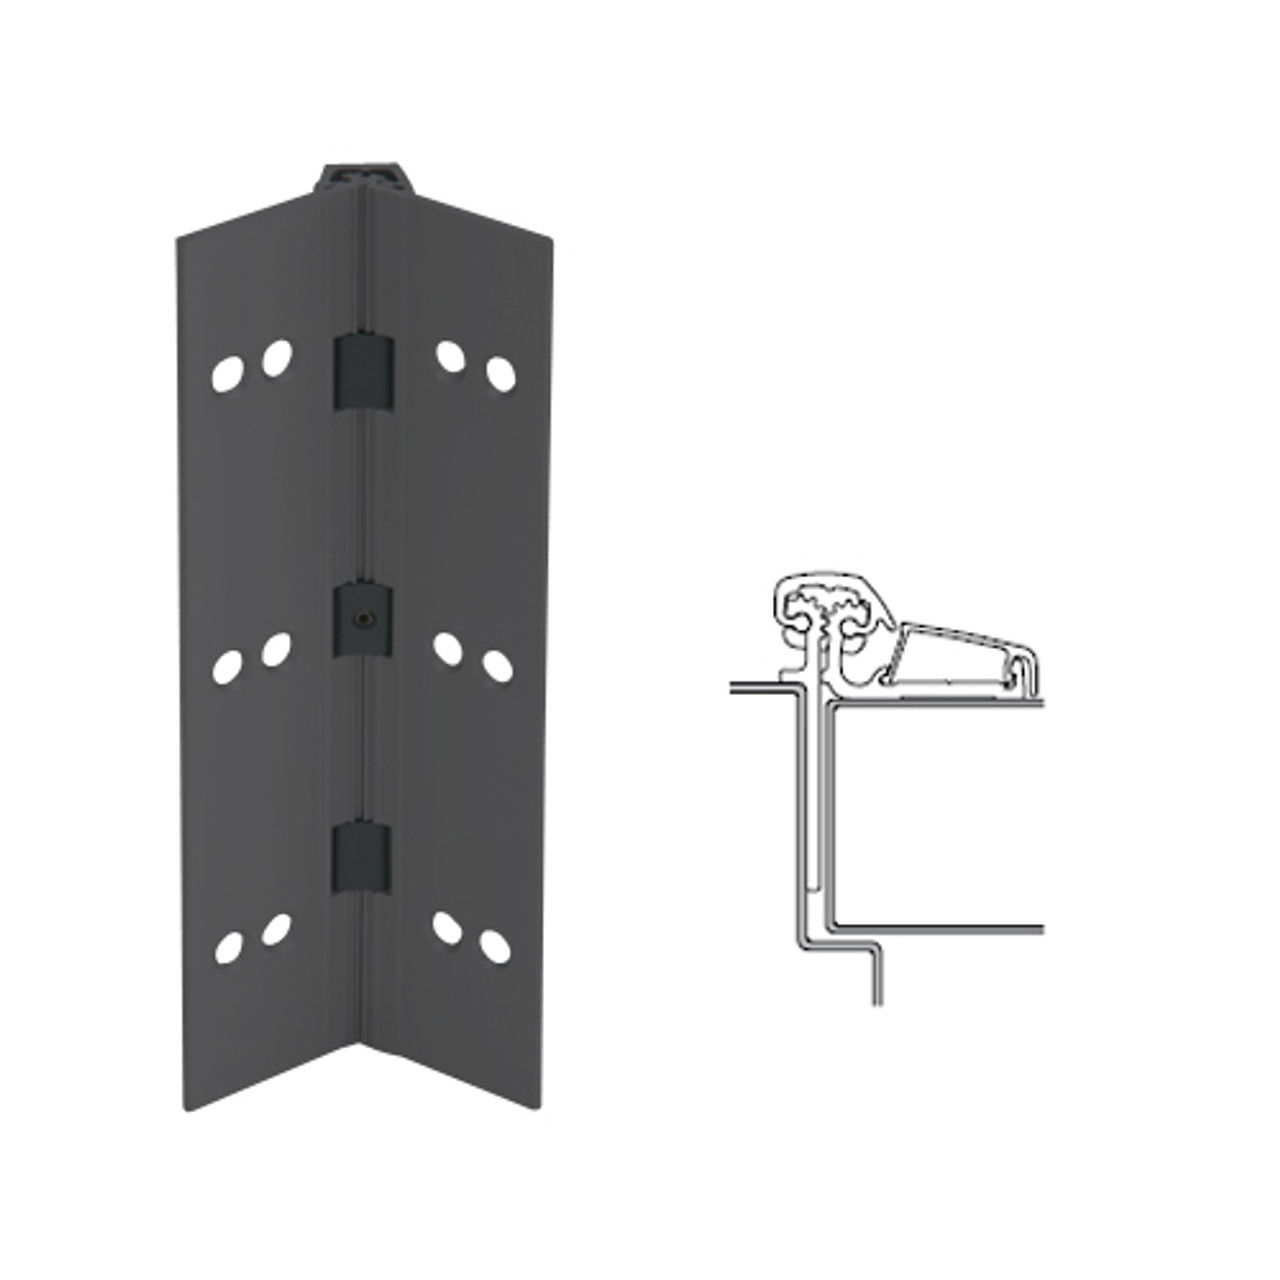 053XY-315AN-120-SECHM IVES Adjustable Half Surface Continuous Geared Hinges with Security Screws - Hex Pin Drive in Anodized Black